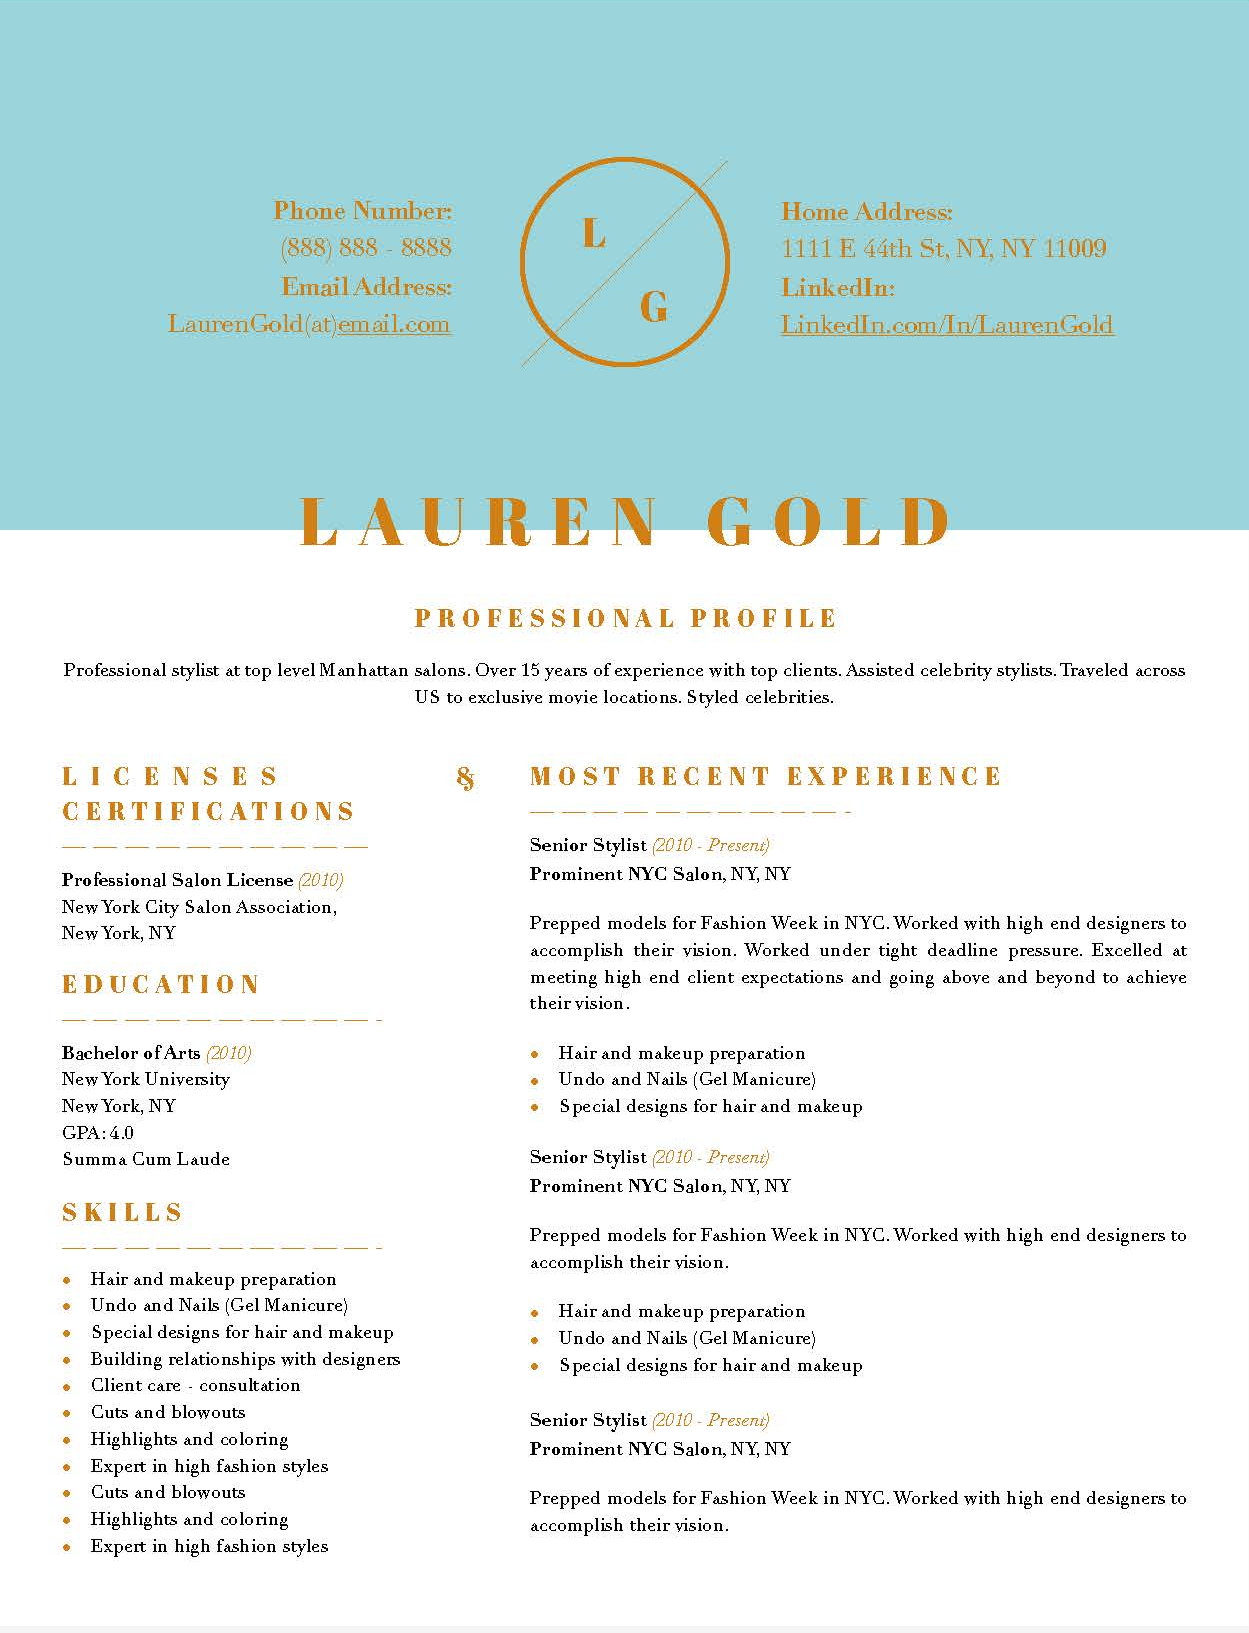 Lauren Gold Fashion Downloadable Resume Template And Cover Letter Template  For Microsoft Word And Apple Pages  1 Page Resume